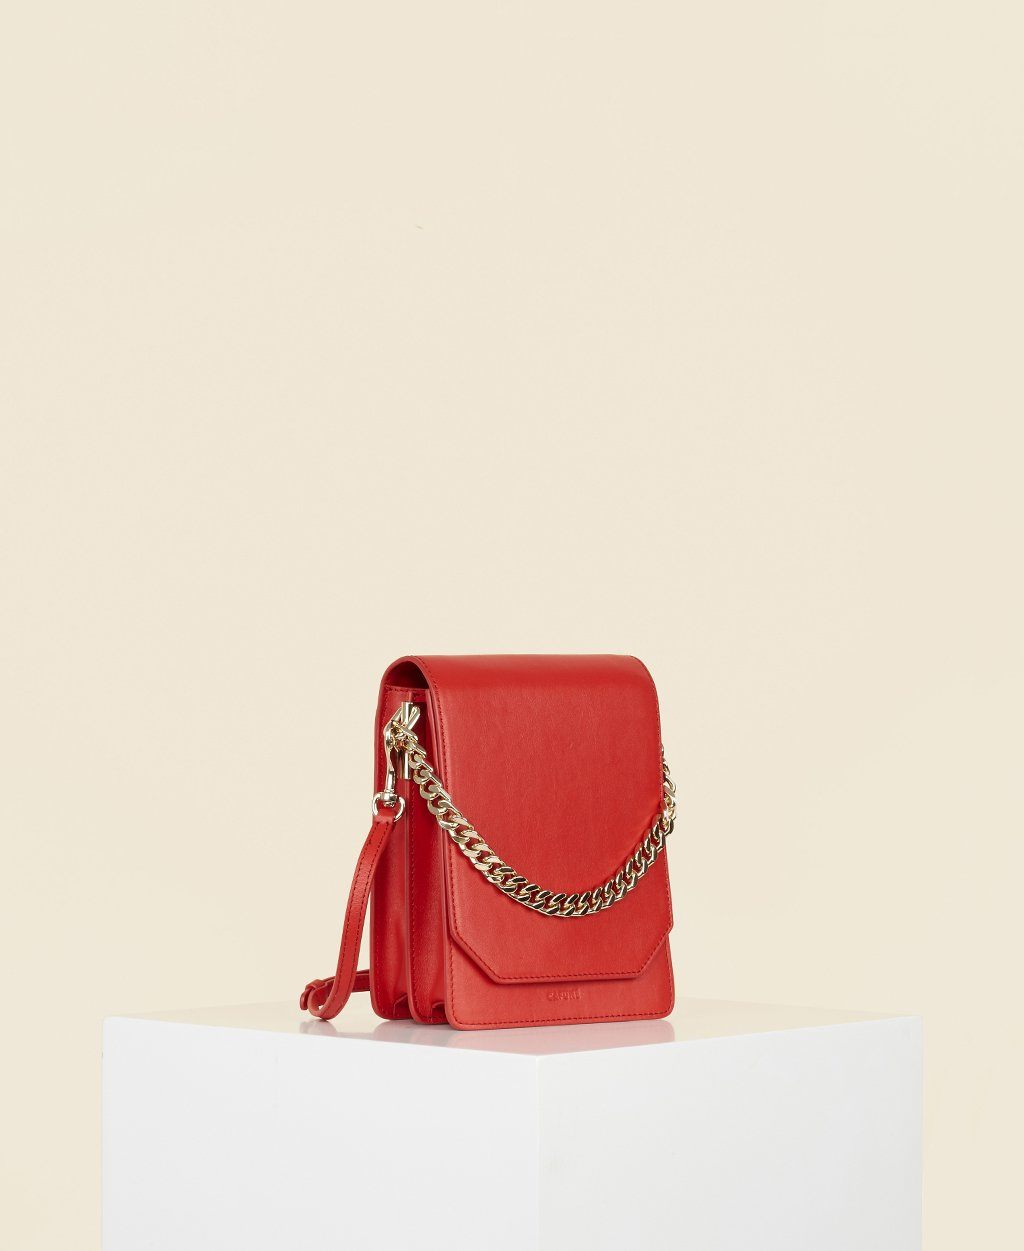 Cafuné Bellows Crossbody in Chili